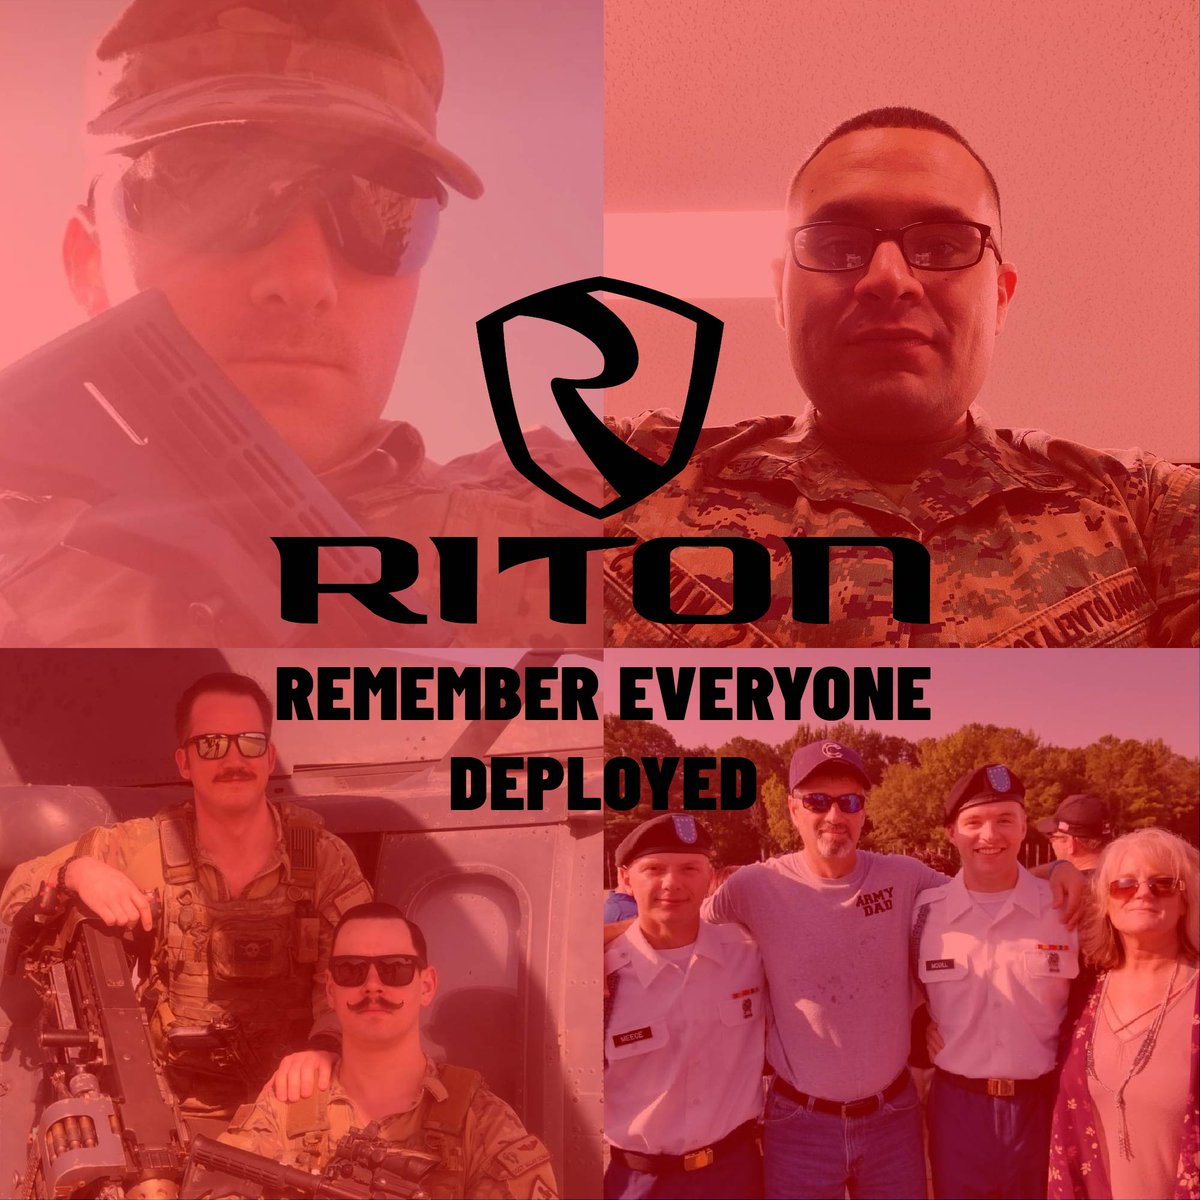 R.E.D. Friday is important to us at Riton Optics as we remember that there are men and women who are serving our country and protecting our freedoms! If you would like to add someone you know go ahead and shoot us a DM with their photo and we will add them! #redfriday #military<br>http://pic.twitter.com/XzarDGAs1I